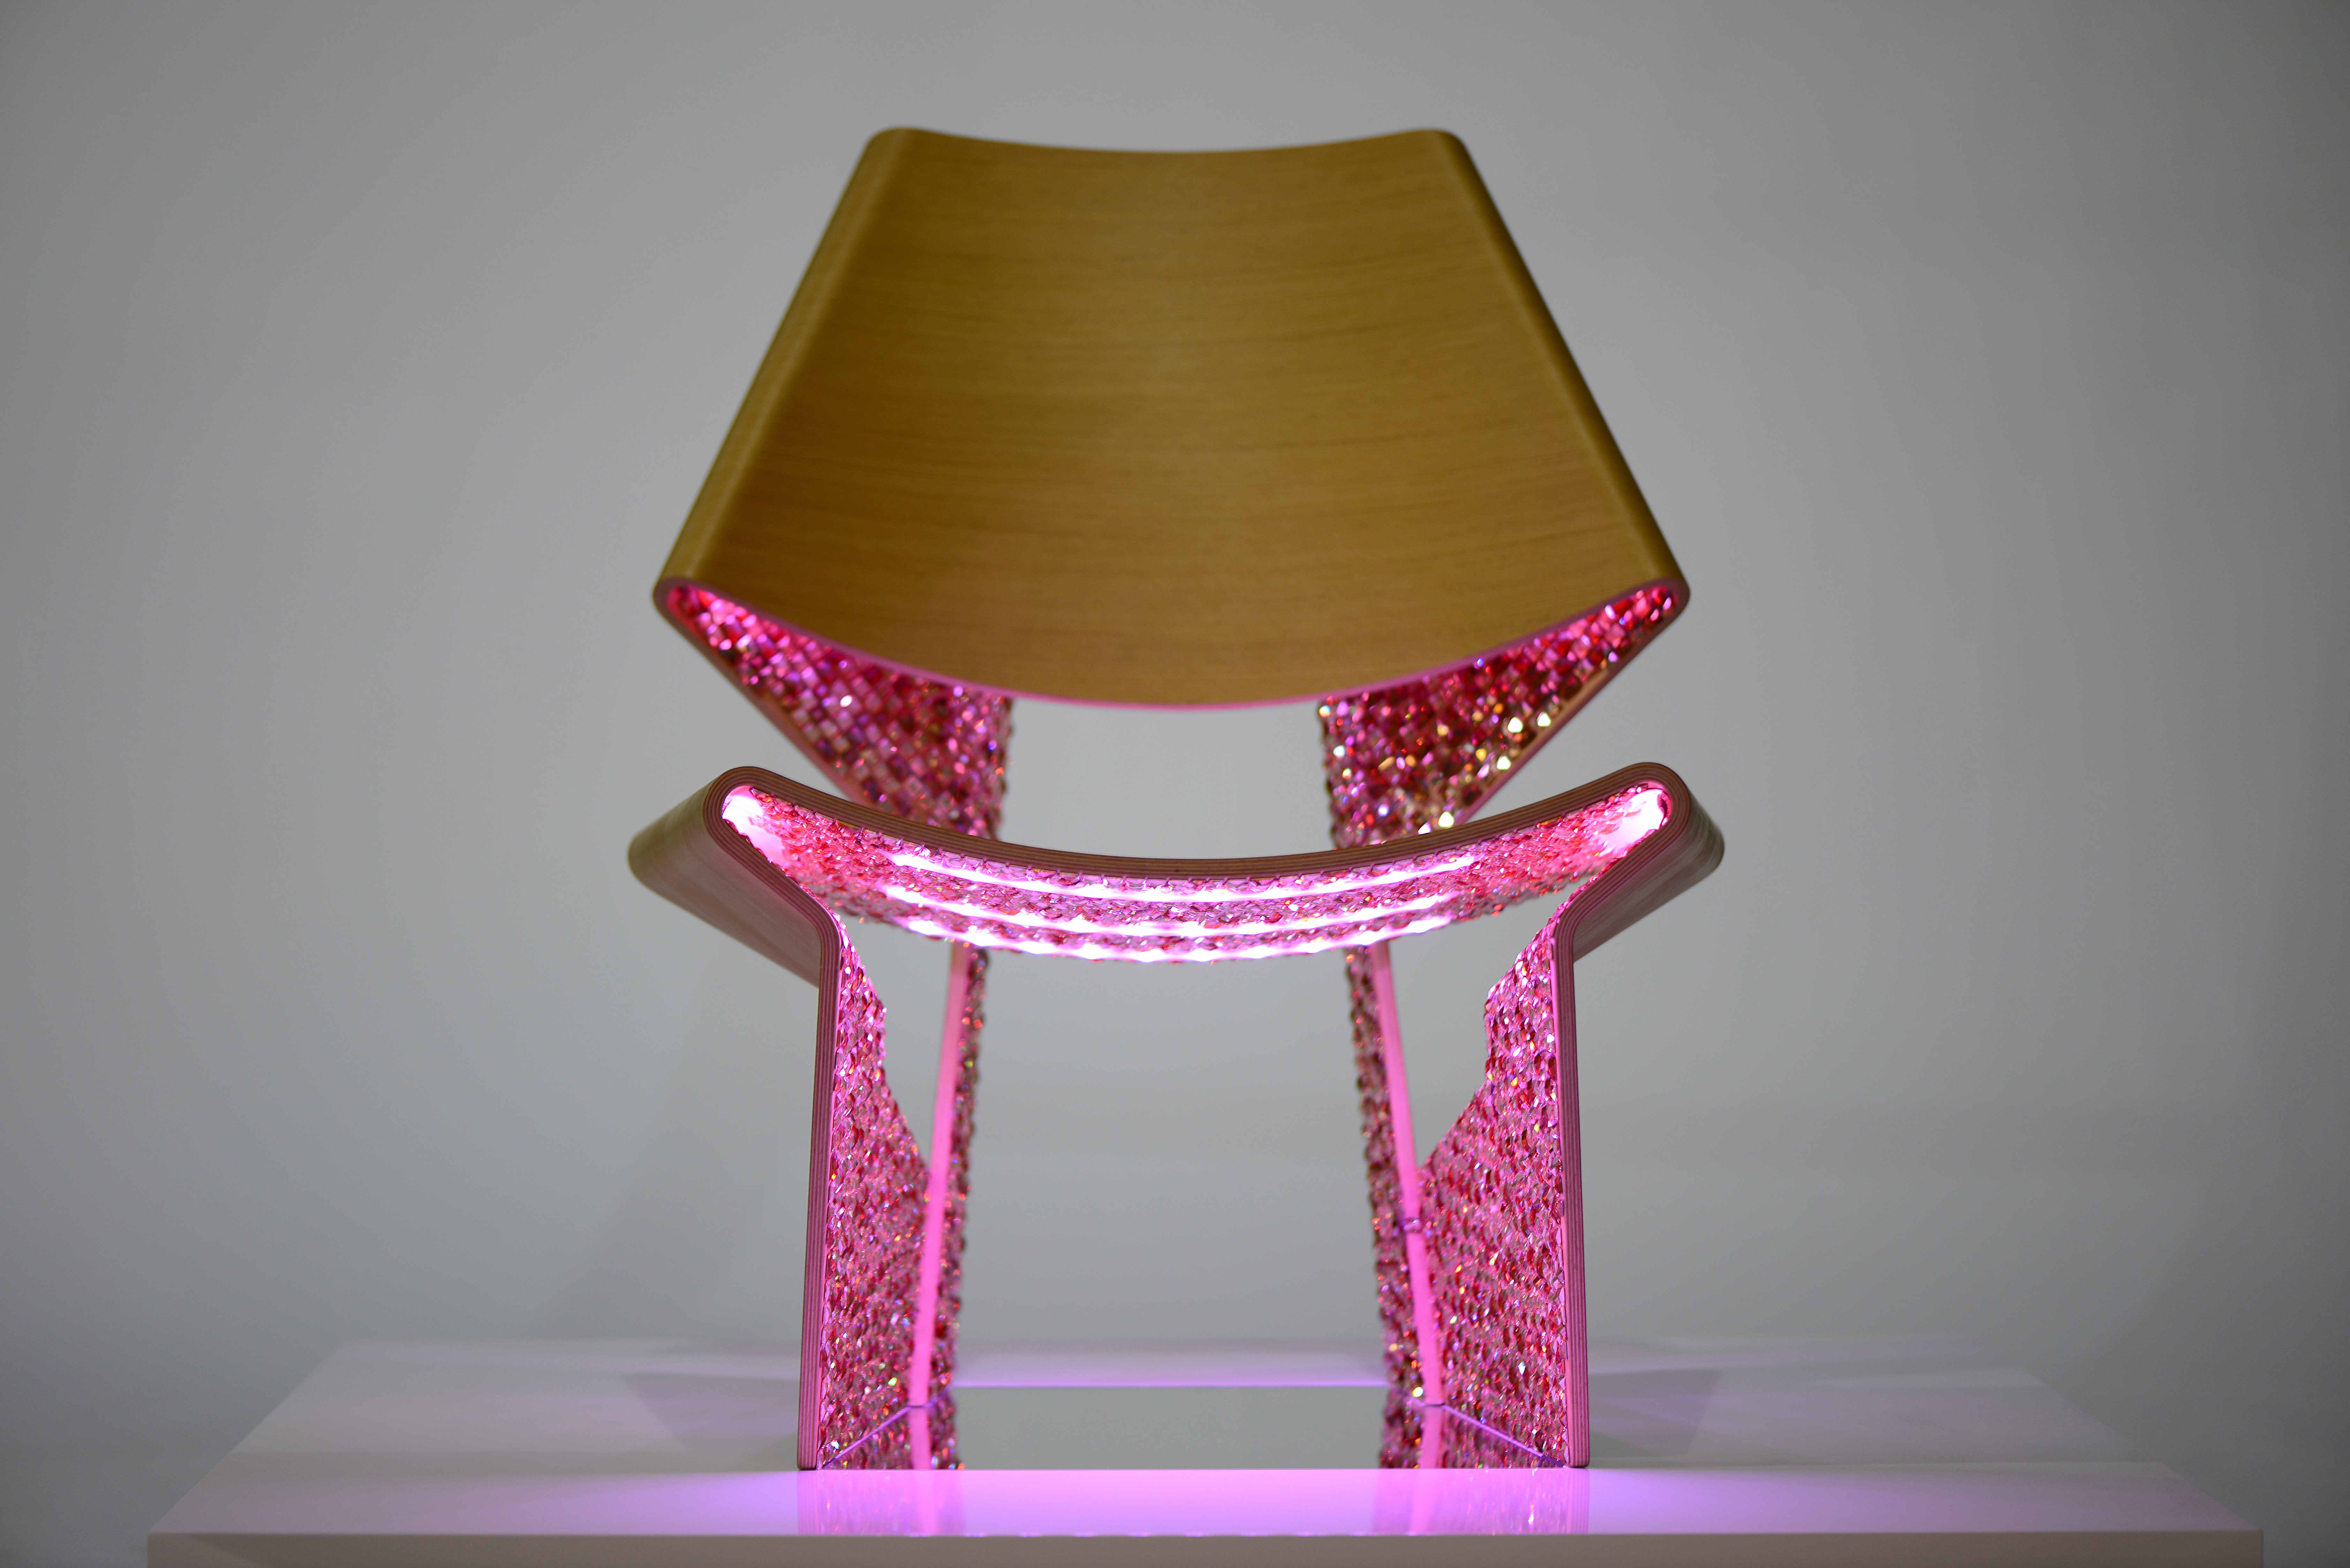 SUITE New York's Pink Jalk Project opens for auction